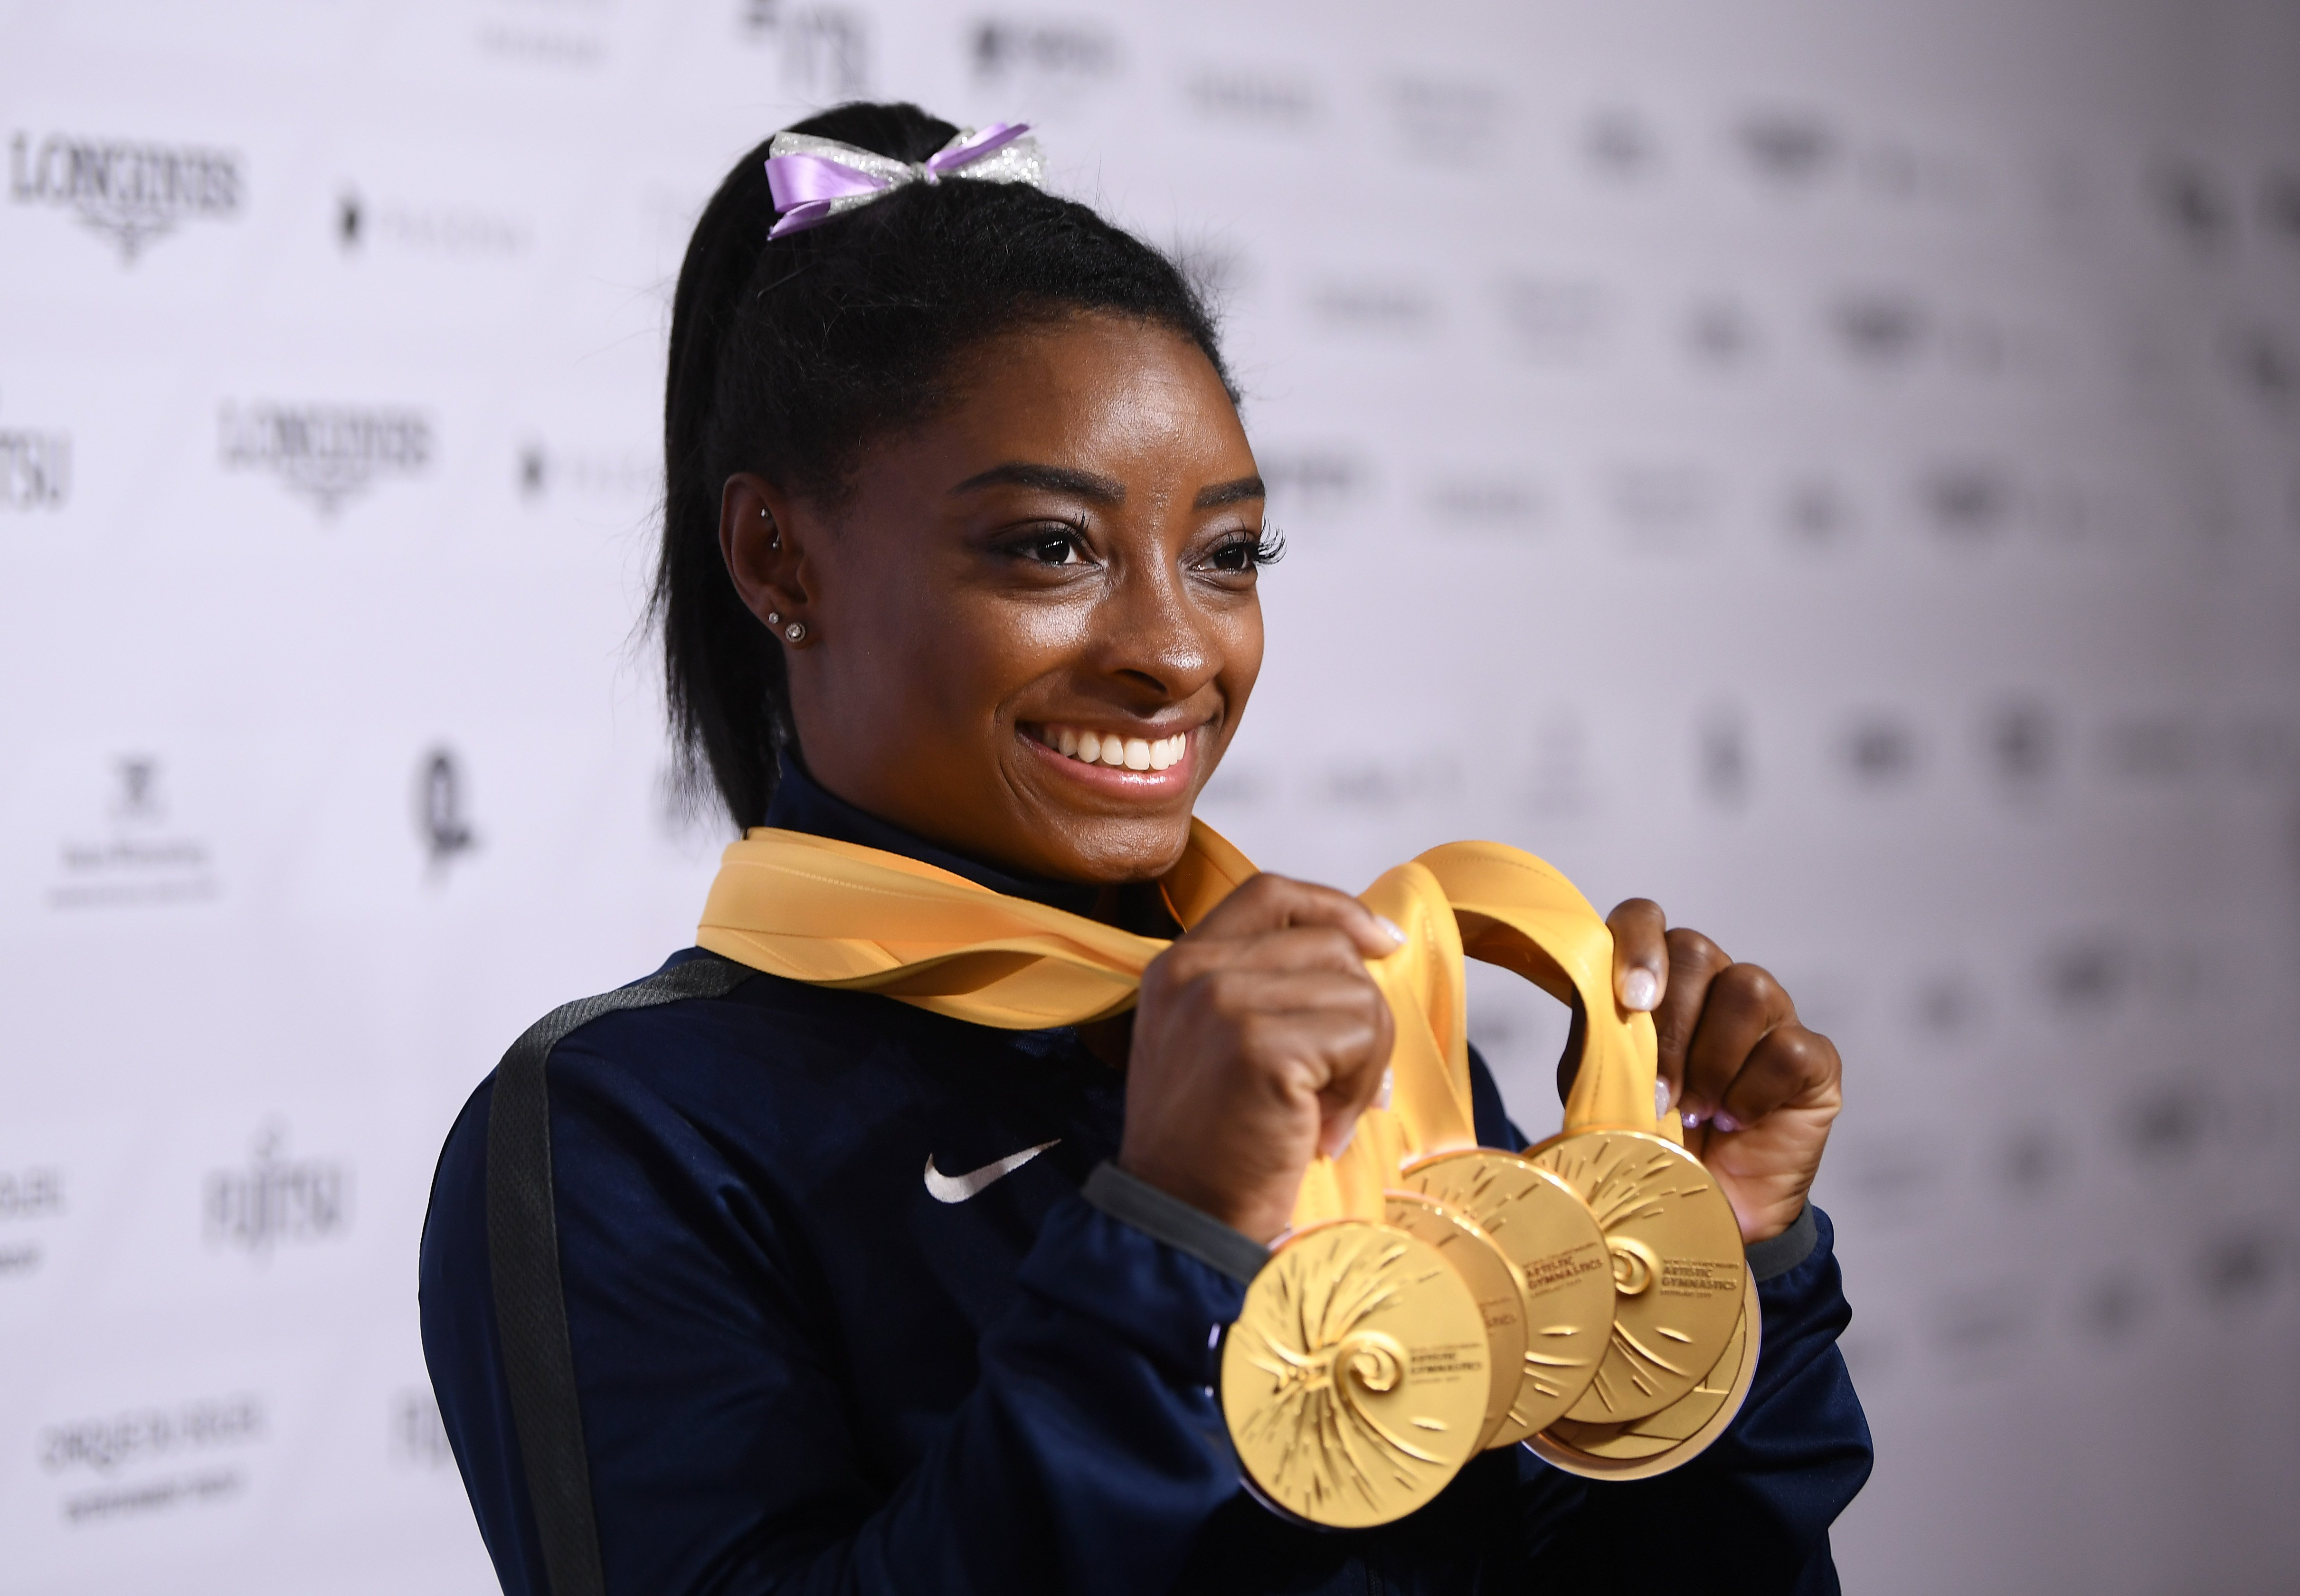 Simone Biles poses with her Medals at the FIG Artistic Gymnastics World Championships on Oct. 13, 2019 in Stuttgart, Germany | Photo: Getty Images